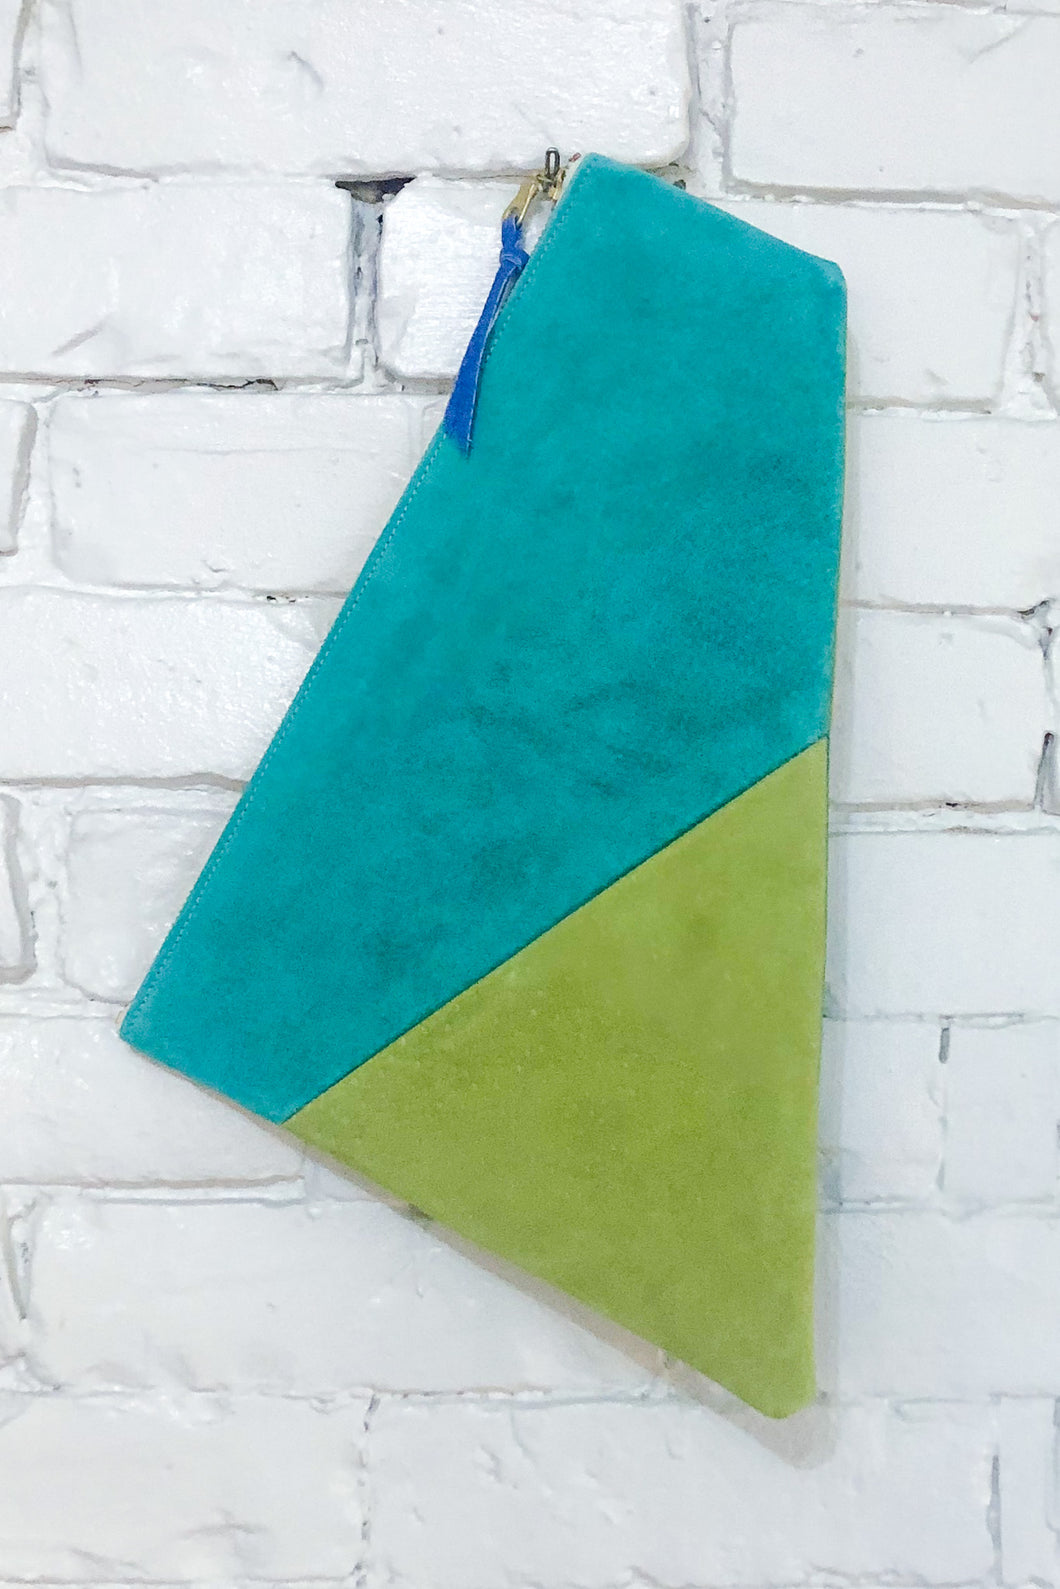 The Trapezoid (Celery and Teal)